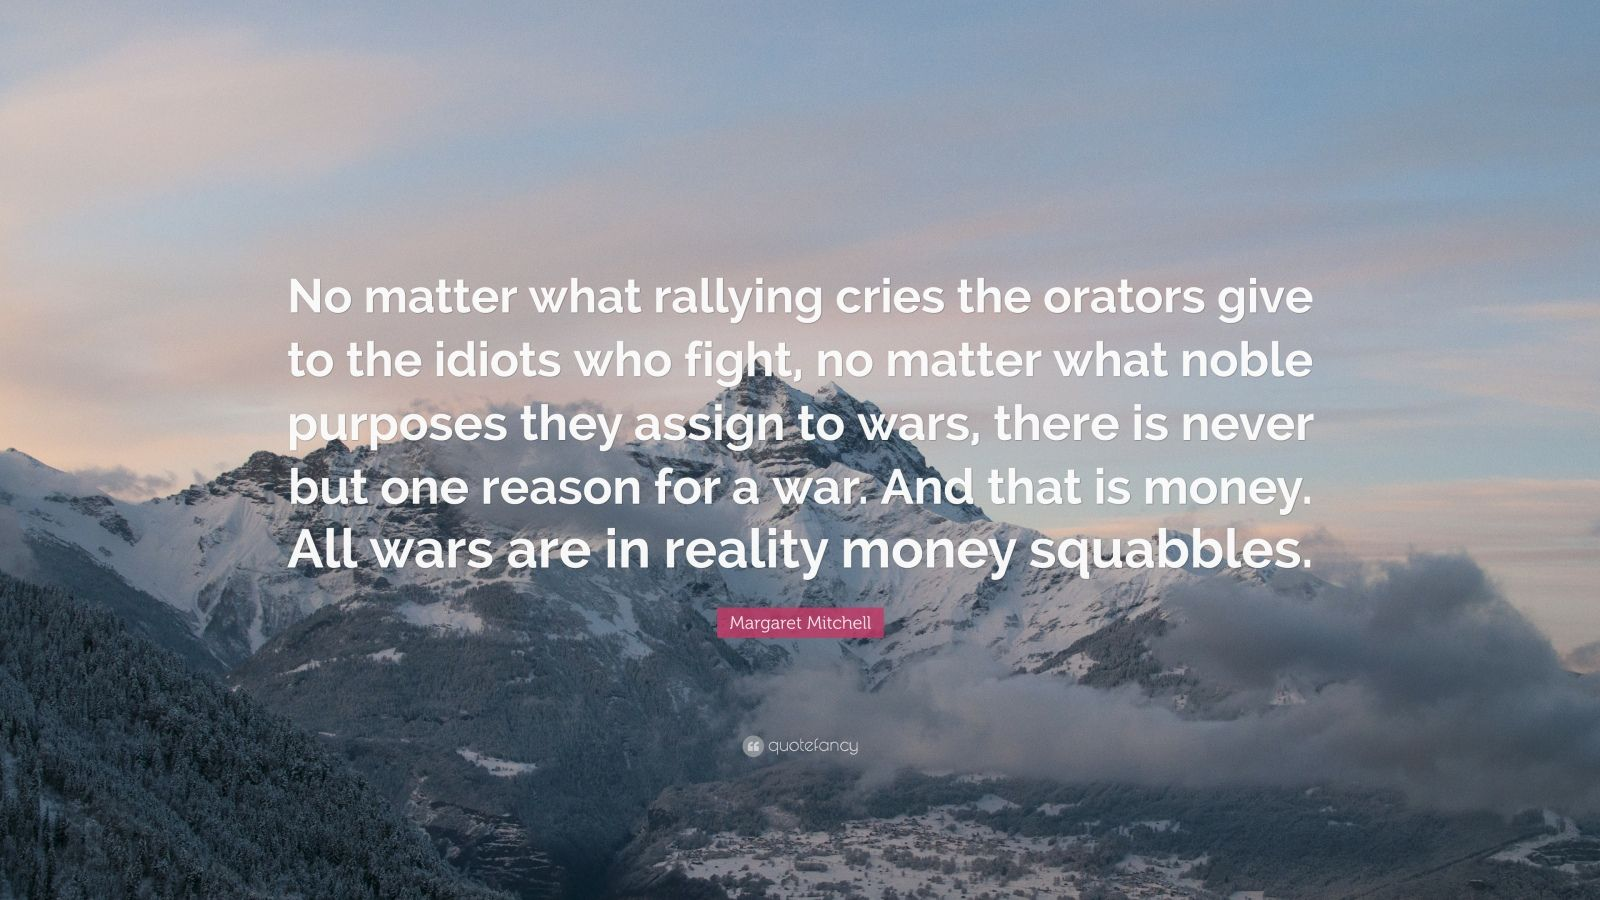 """Margaret Mitchell Quote: """"No matter what rallying cries the orators give to the idiots who fight, no matter what noble purposes they assign to wars, there is never but one reason for a war. And that is money. All wars are in reality money squabbles."""""""